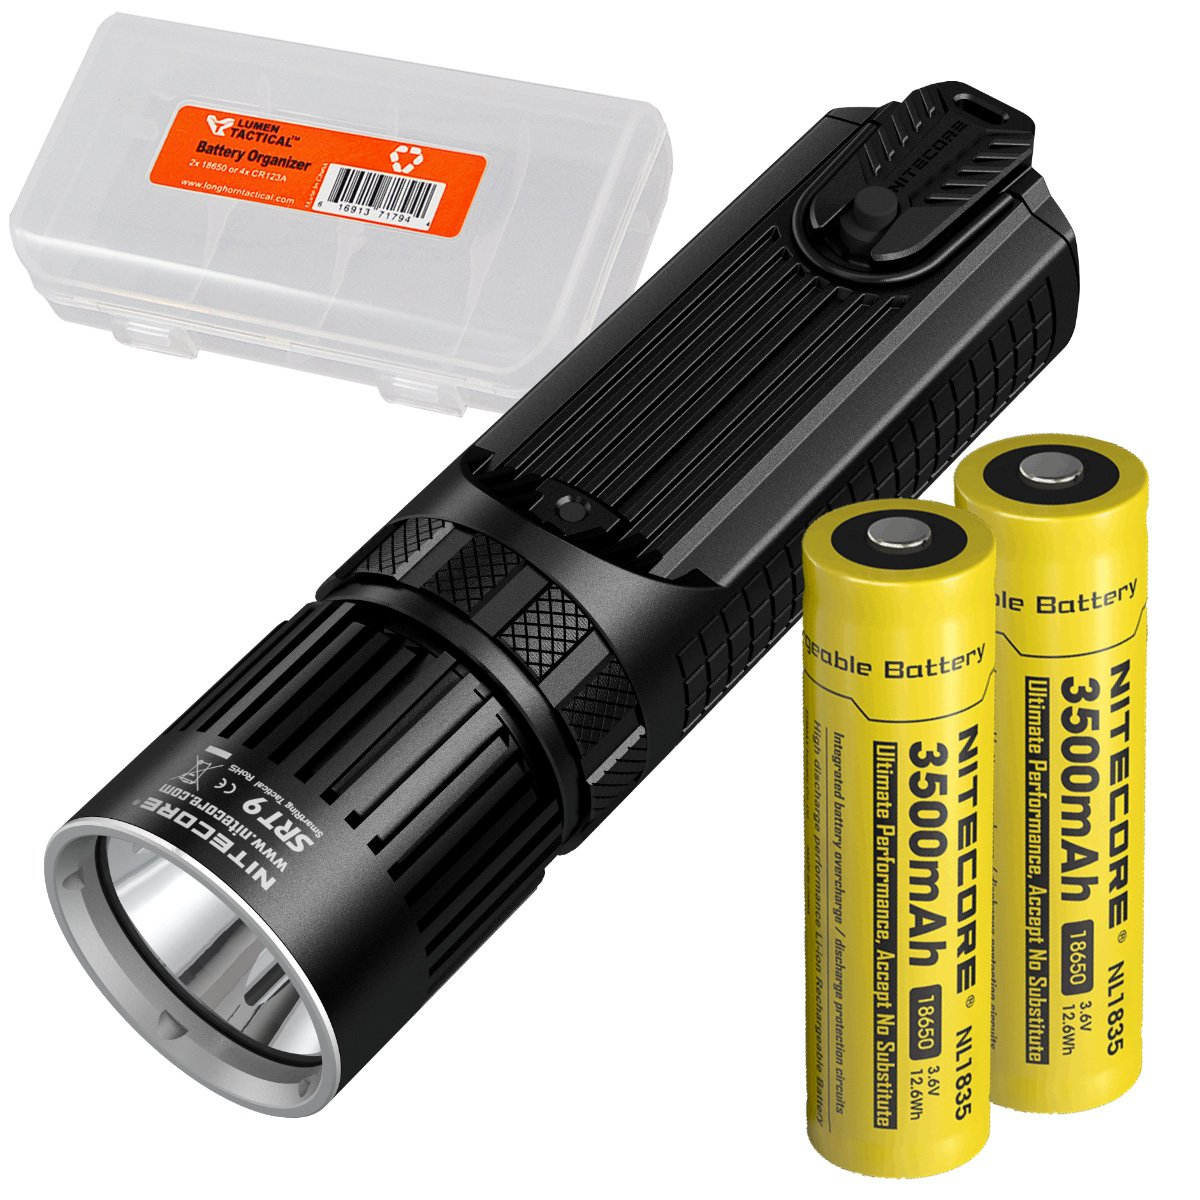 Nitecore SRT9 2150 Lumen Multi-LED Smartring Tactical Flashlight (White, Red, Blue, Green, & UV) PLUS 2x 3500mAh High-Drain 18650 Rechargeable Batteries & LumenTac Battery Organizer by Nitecore